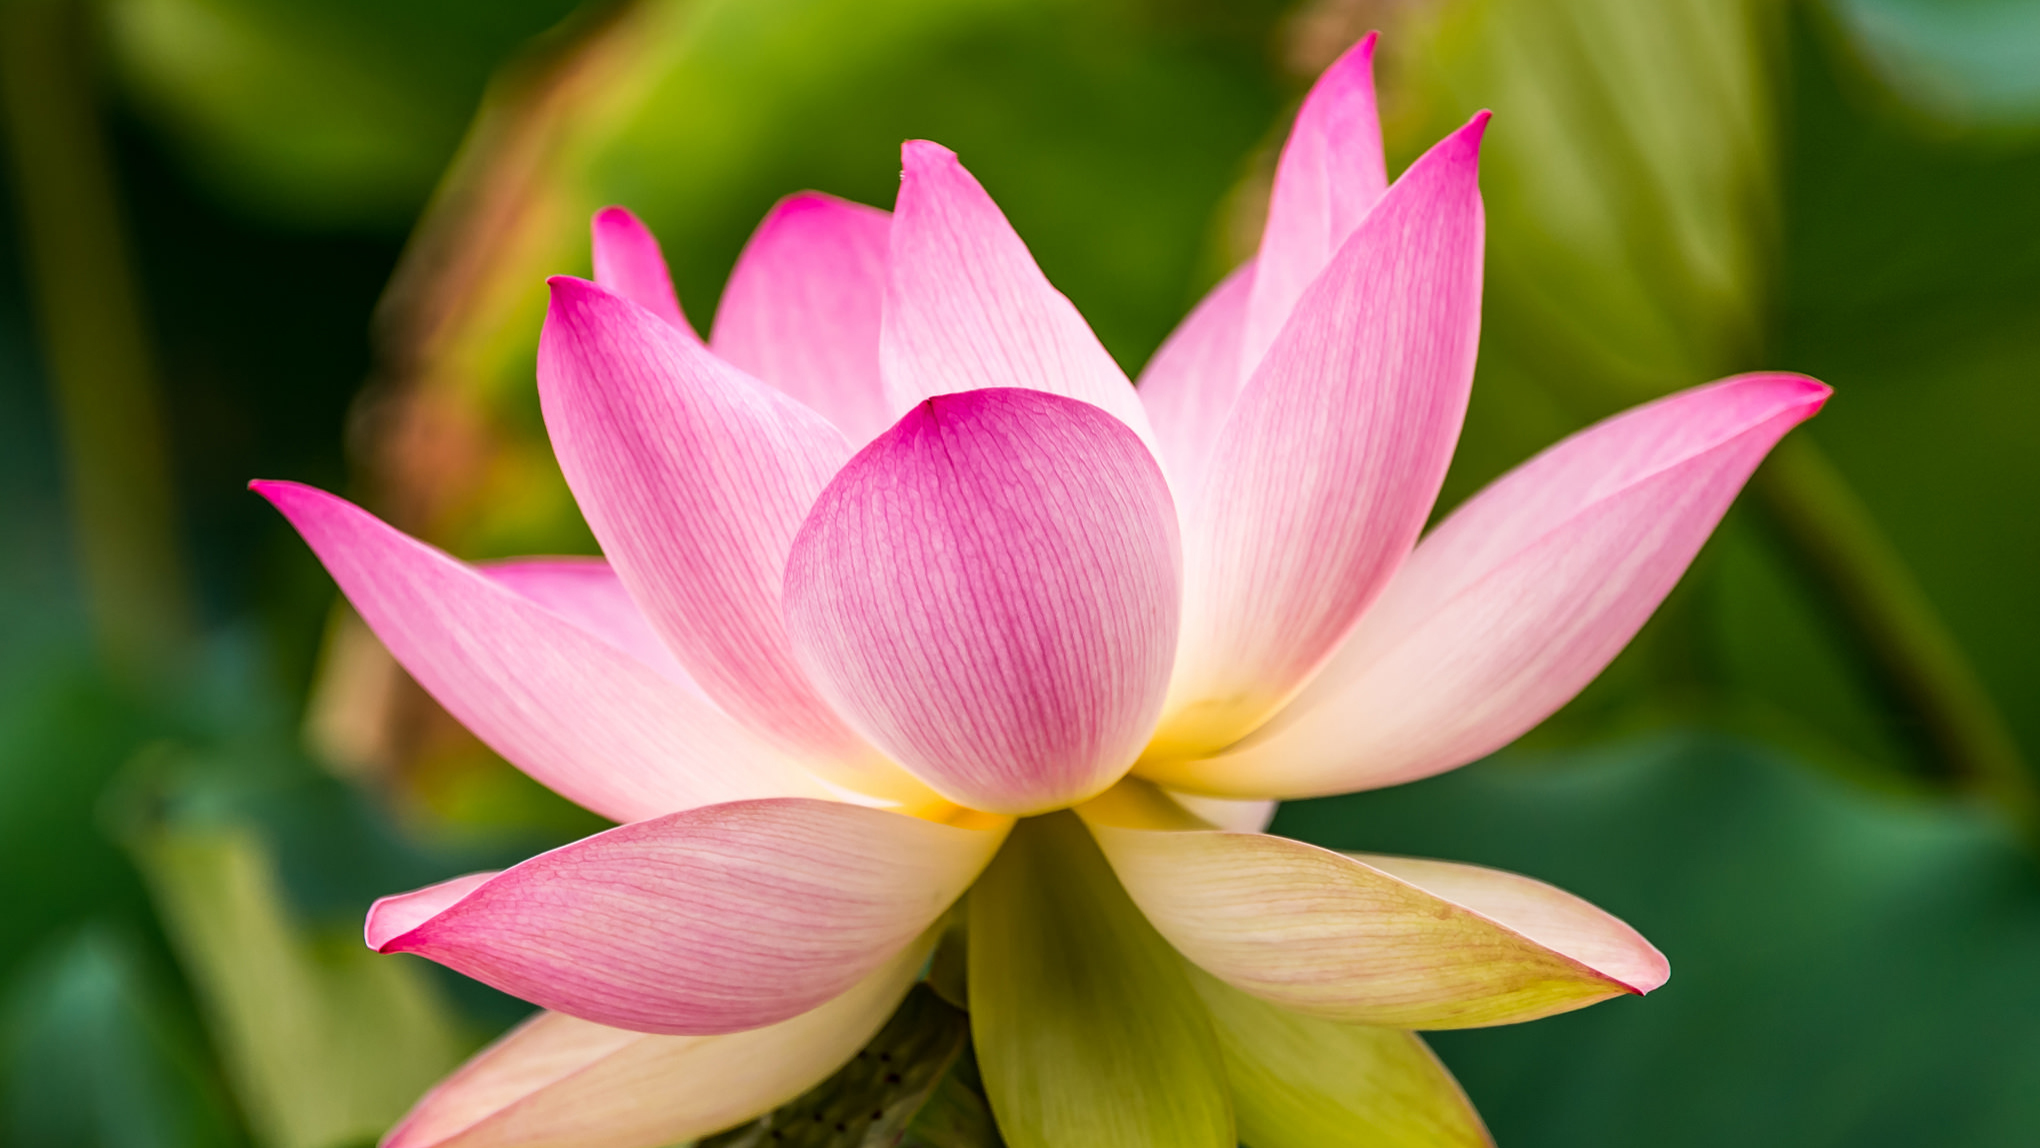 The Lotus Giant for Google+